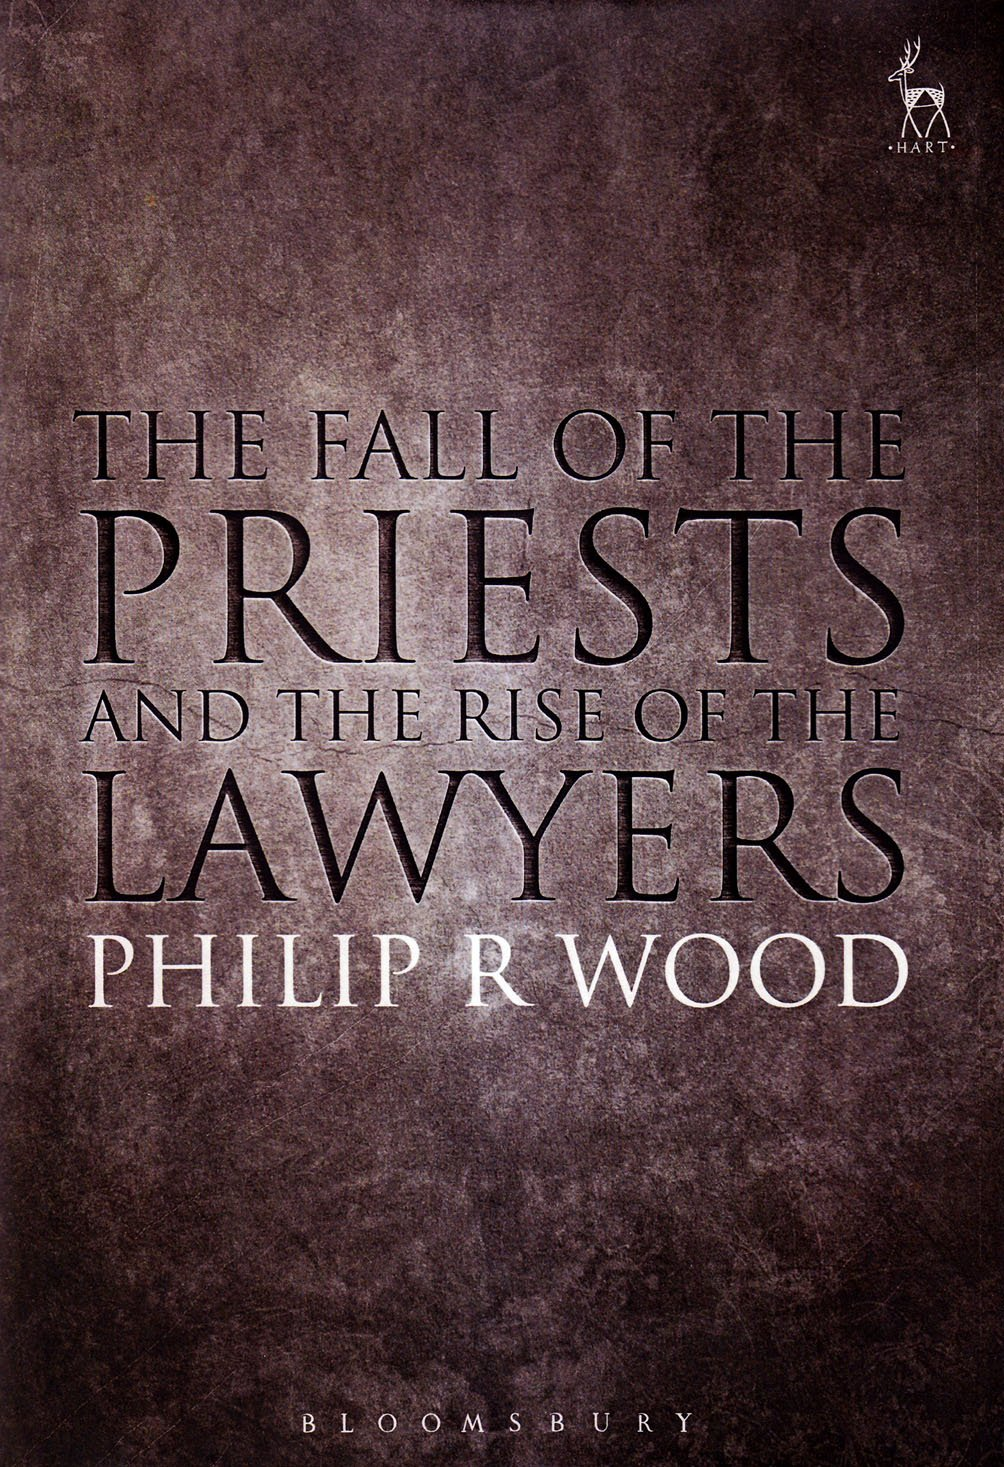 The Fall of the Priests and the Rise of the Lawyers: Amazon.co.uk: Philip Wood: 9781509905546: Books